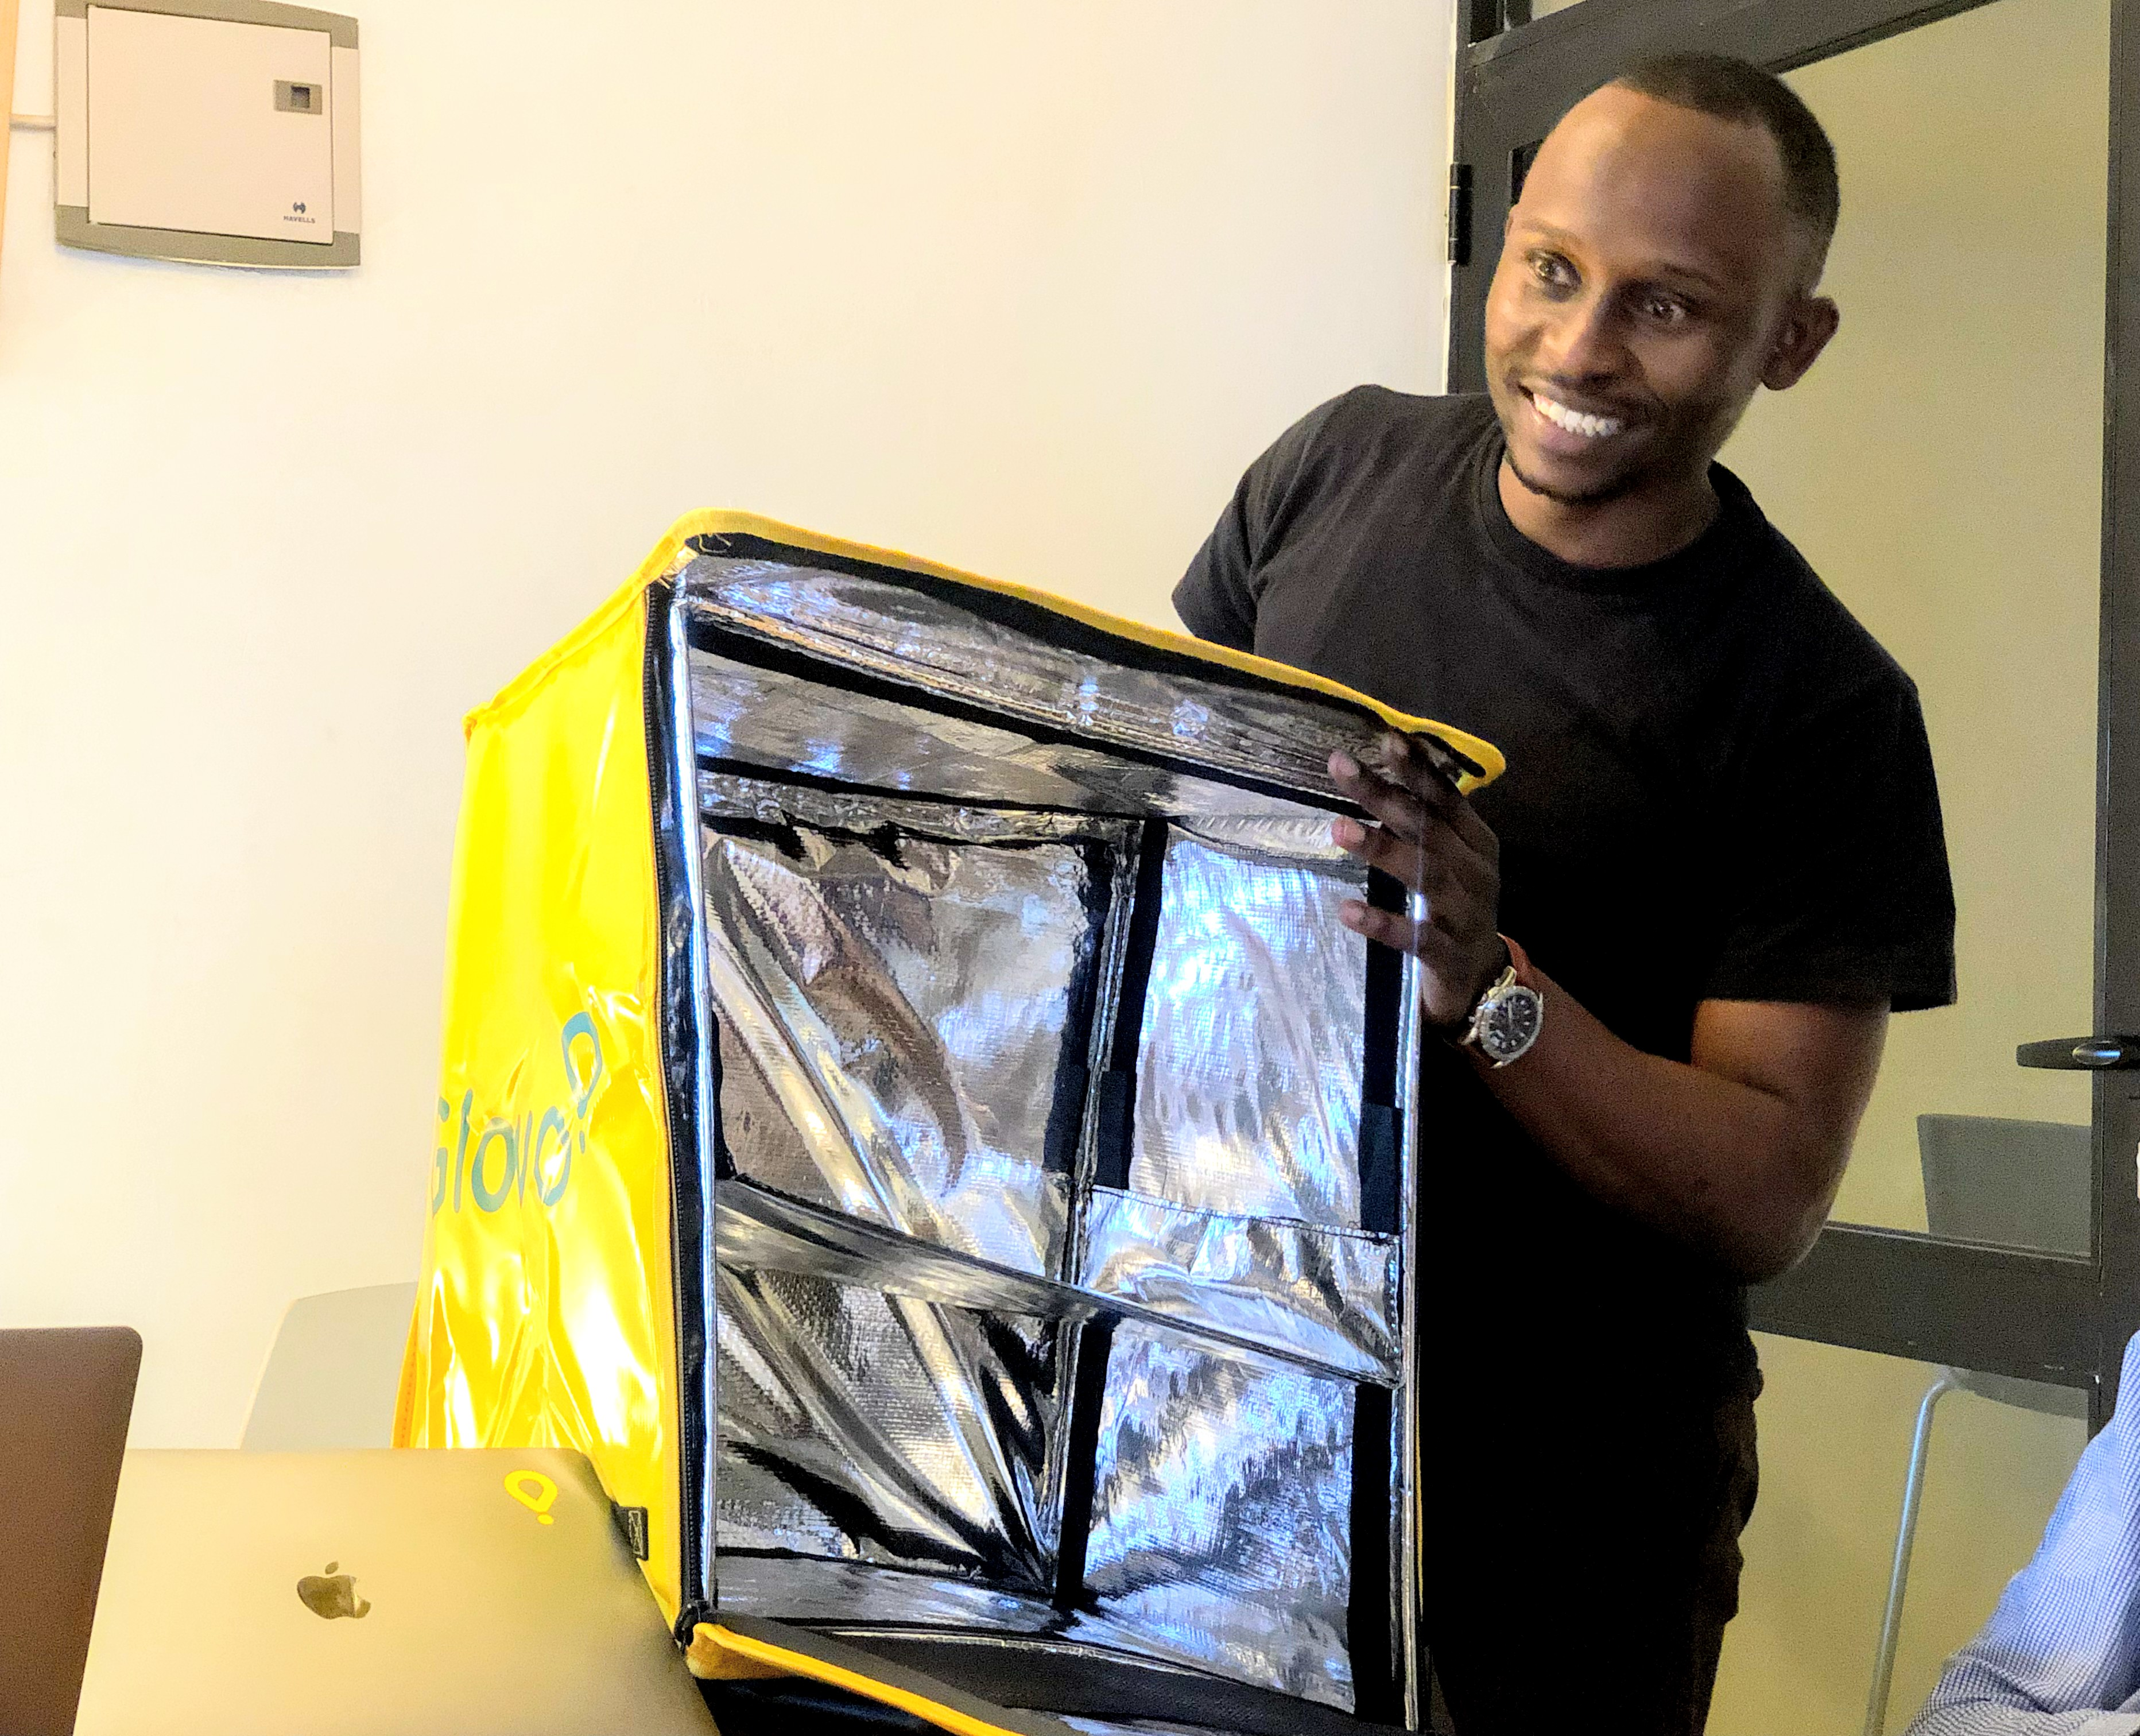 4 Reasons Why Glovo Could Become Kenya's 'Killer' On-Demand